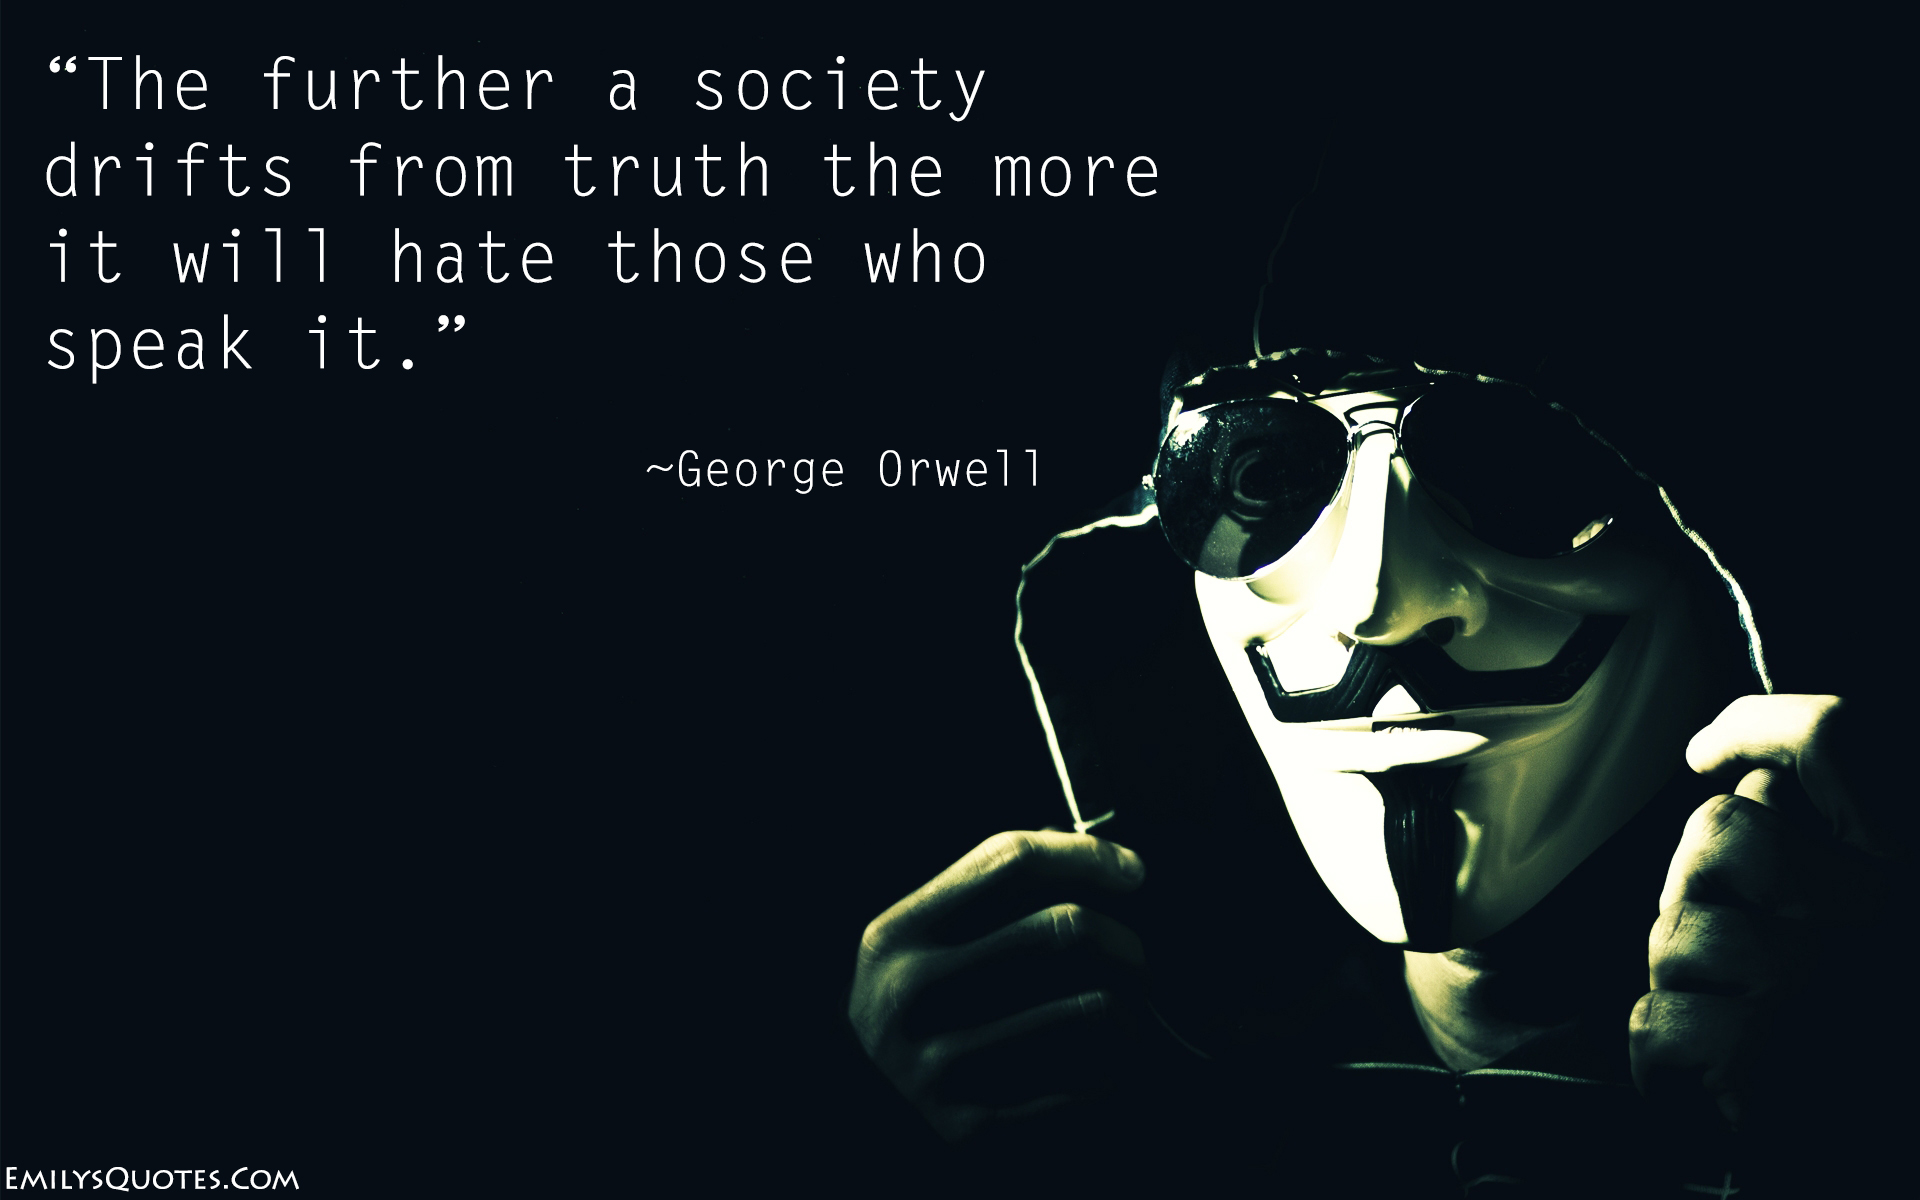 EmilysQuotes.Com - truth, hate, intelligence, society, George Orwell